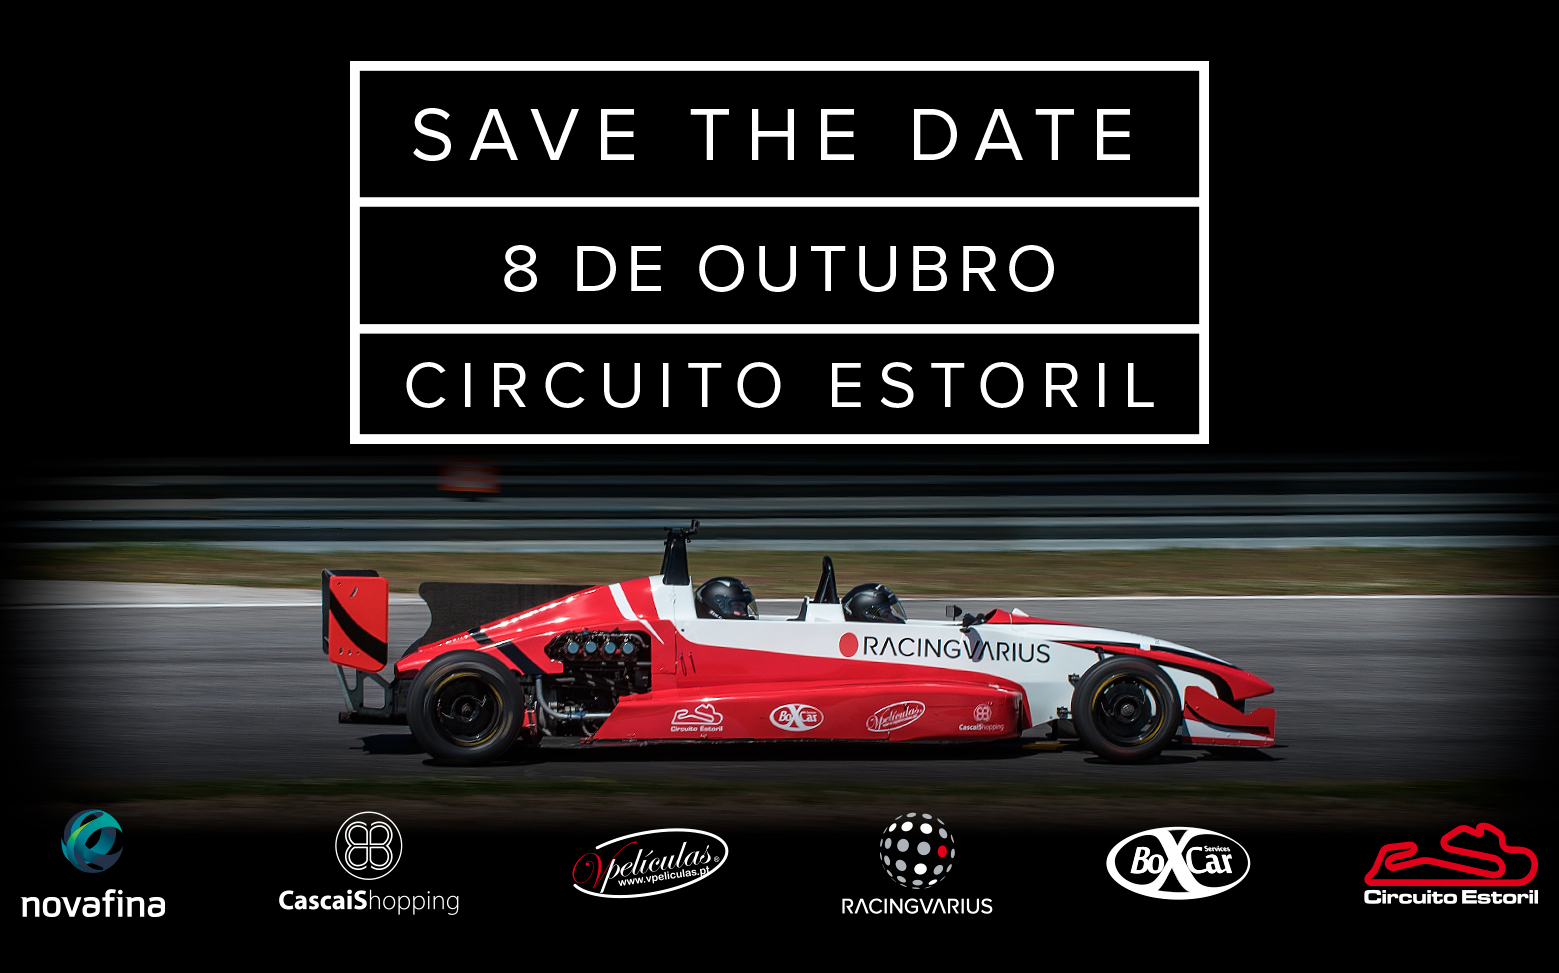 Save the Date 8 de Outubro